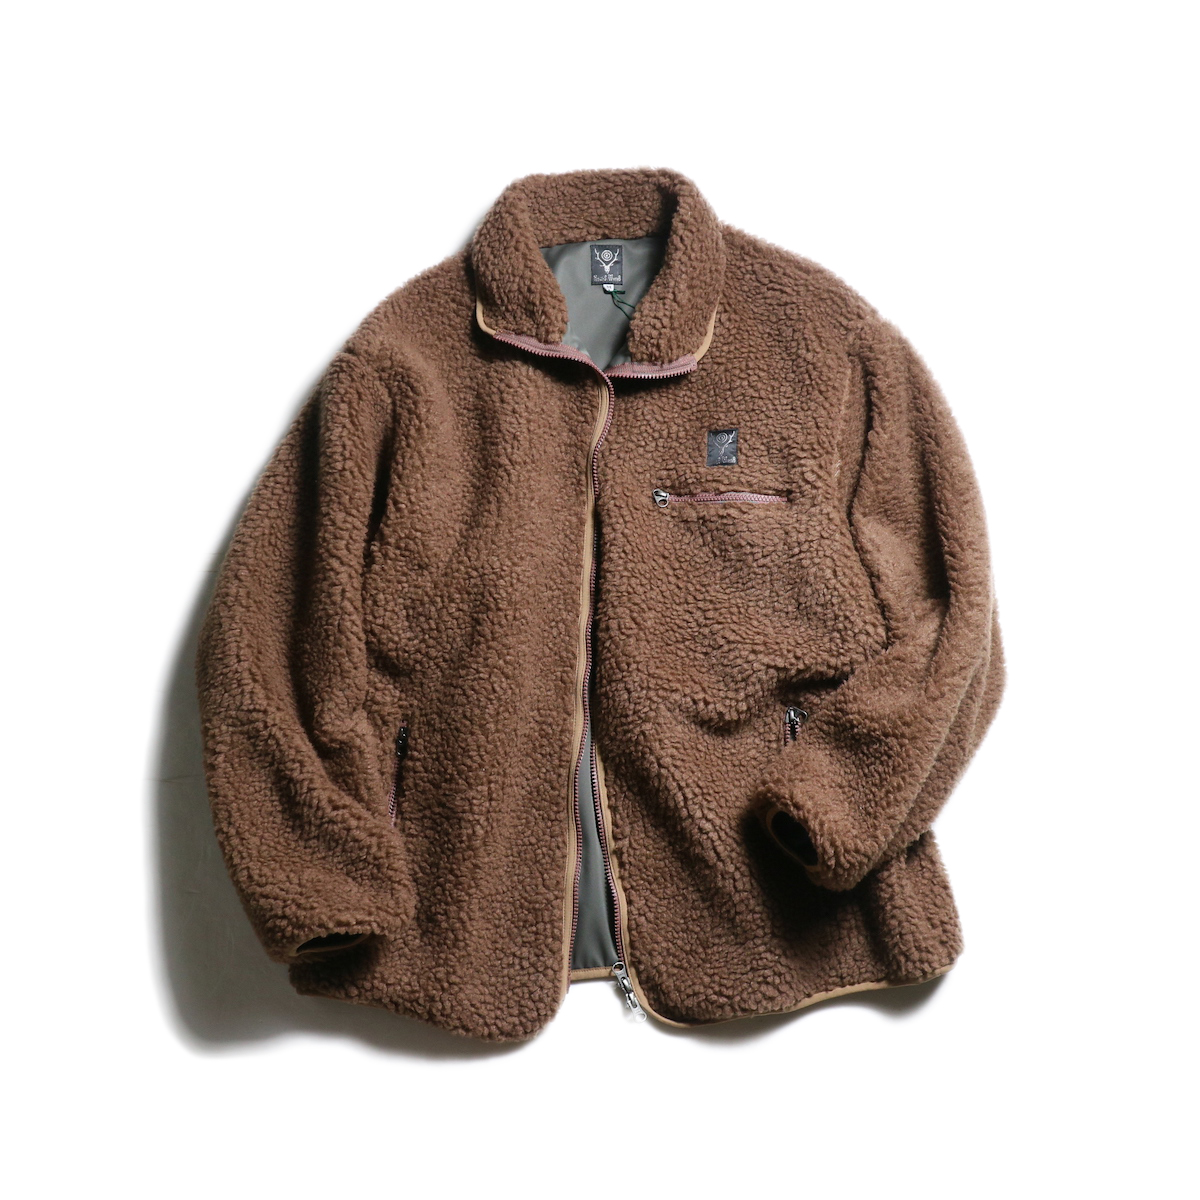 SOUTH2 WEST8 / Piping Jacket -Synthetic Pile (Mocha)